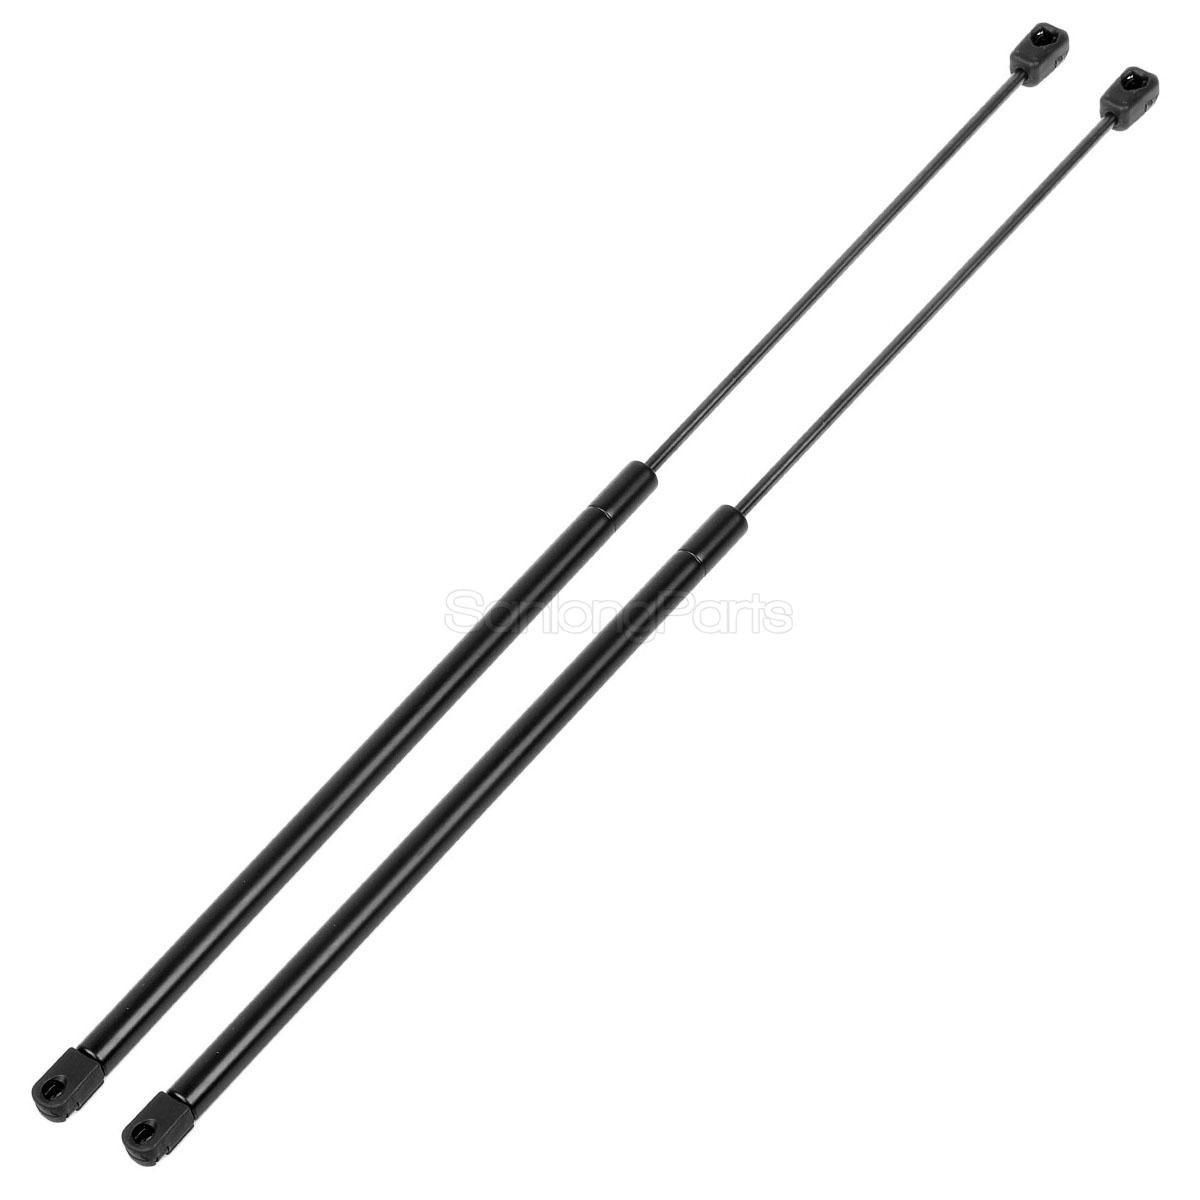 2 Lift Support Gas Strut Shock Spring Prop Rod For